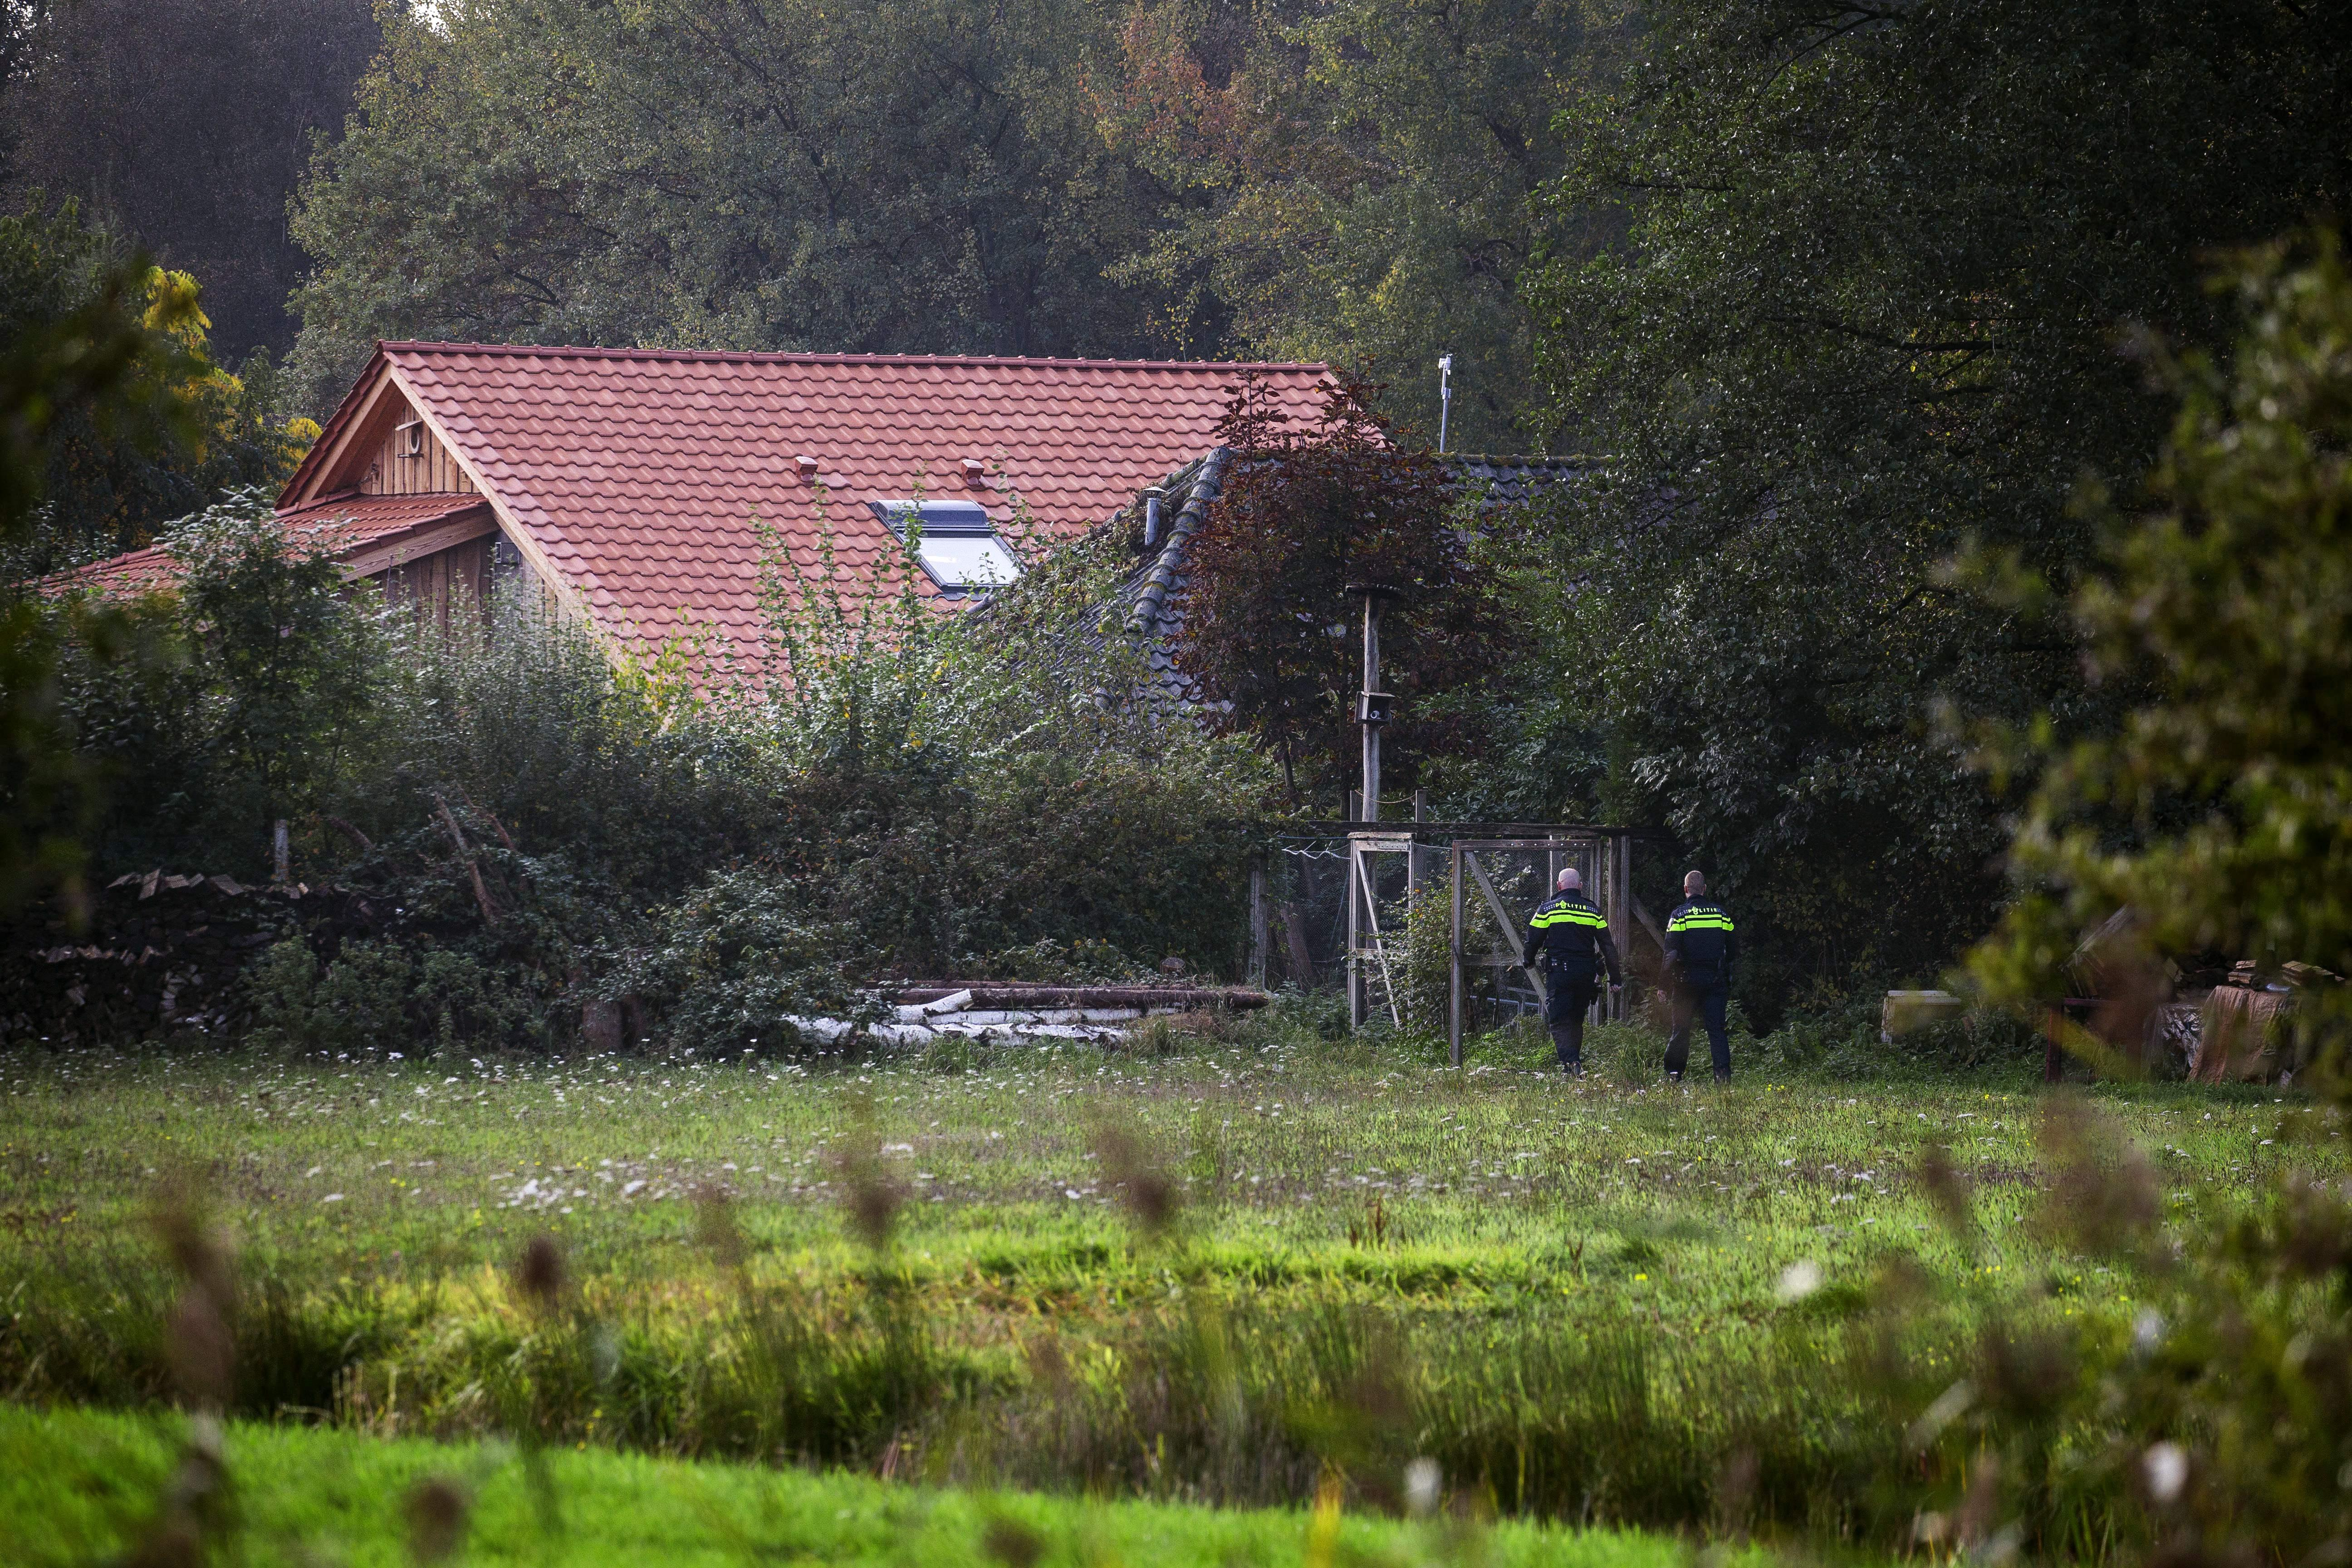 """Police inspect the area of a farmhouse in a remote area of northern Netherlands' province of Drenthe, near the village of Ruinerwold, on October 16, 2019 a day after Dutch police discovered a hidden staircase behind a cupboard leading to a cellar where a man and five others believed to be his children aged between 18 and 25 were hidden and reportedly spent years """"waiting for the end of time"""", officials said. - Local media said the family were found after one of the sons went to a nearby pub in a confused state, drank five beers and then asked for help, saying he had not been outside for nine years. Police arrested a 58-year-old man at the scene for failing to cooperate with the investigation, but he was not the father. Many questions were unanswered and police are investigating """"All scenarios"""". """"At this point we cannot give further information,"""" local police said. (Photo by Vincent Jannink / ANP / AFP) / Netherlands OUT (Photo by VINCENT JANNINK/ANP/AFP via Getty Images)"""